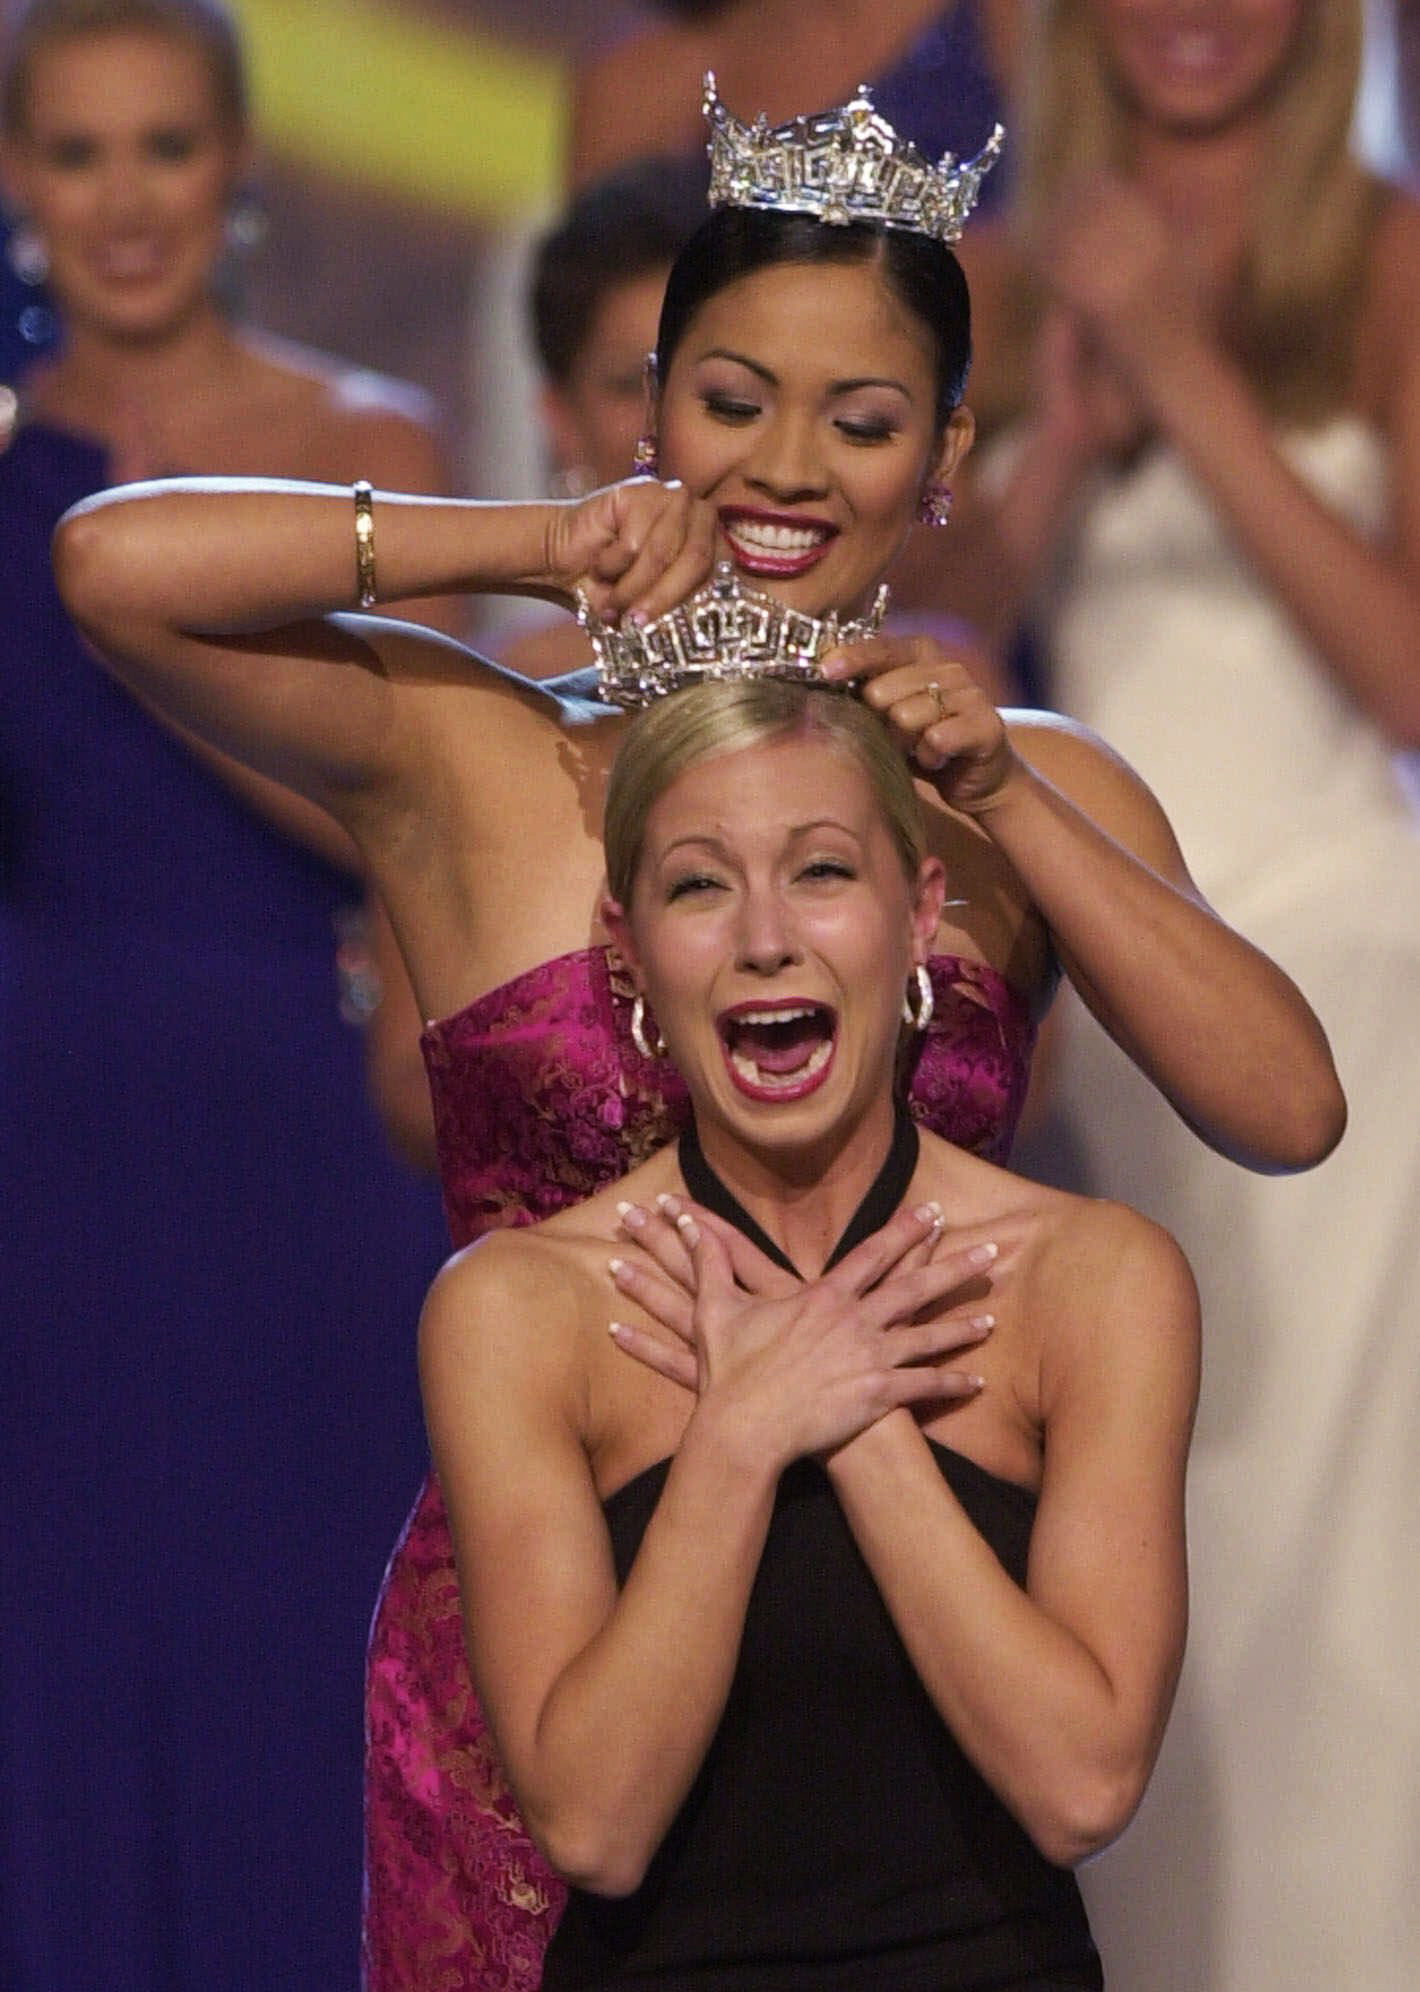 Former Miss America Angela Perez Baraquio, top, crowns Miss Oregon Katie Harman as Miss America 2002, during the Miss America Pageant in Atlantic City, N.J. on Sept. 22, 2001.